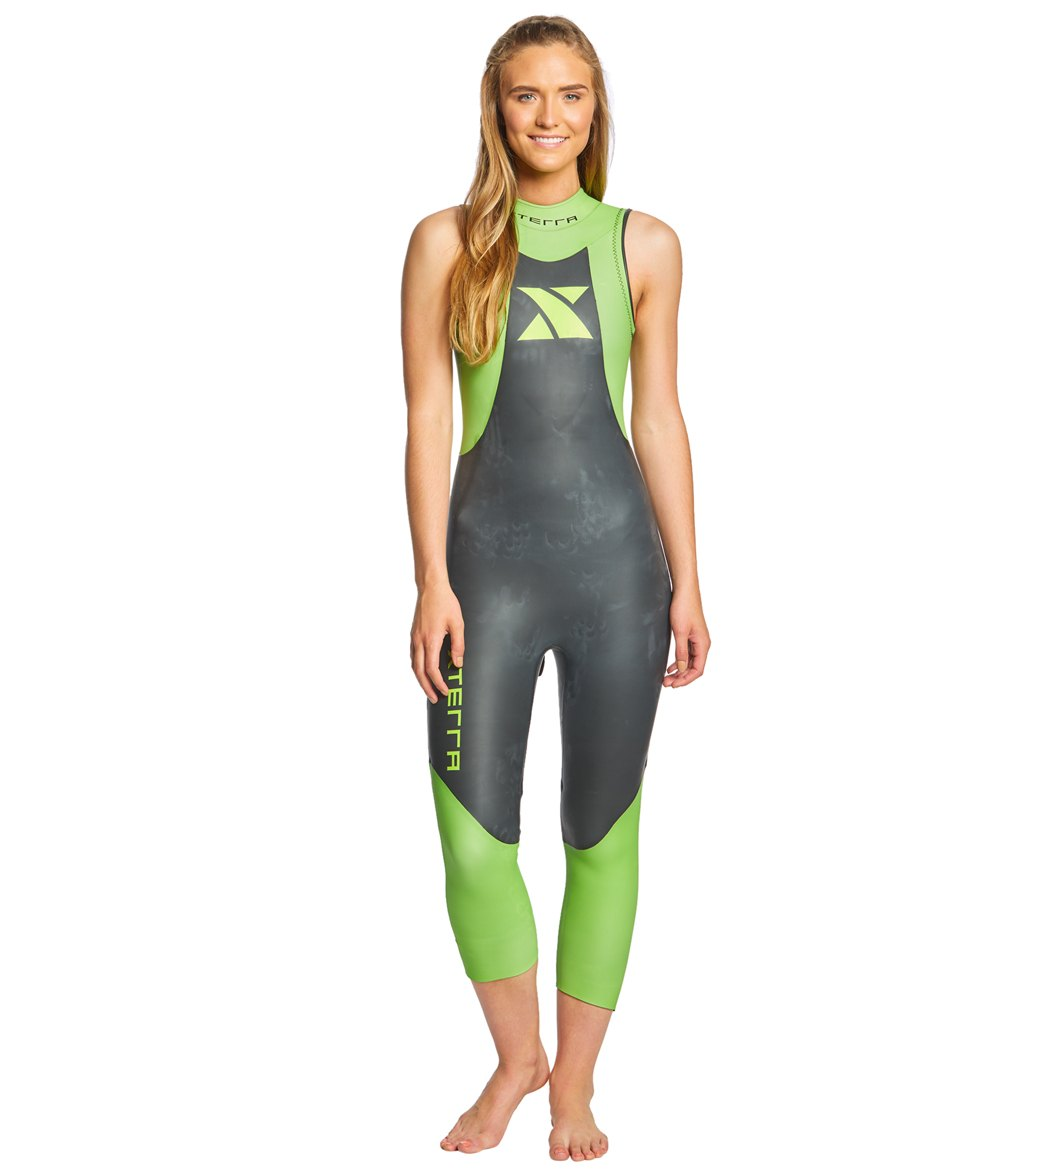 7aacb8641cf0 Xterra Wetsuits Women s Vivid Sleeveless Wetsuit at SwimOutlet.com - Free  Shipping